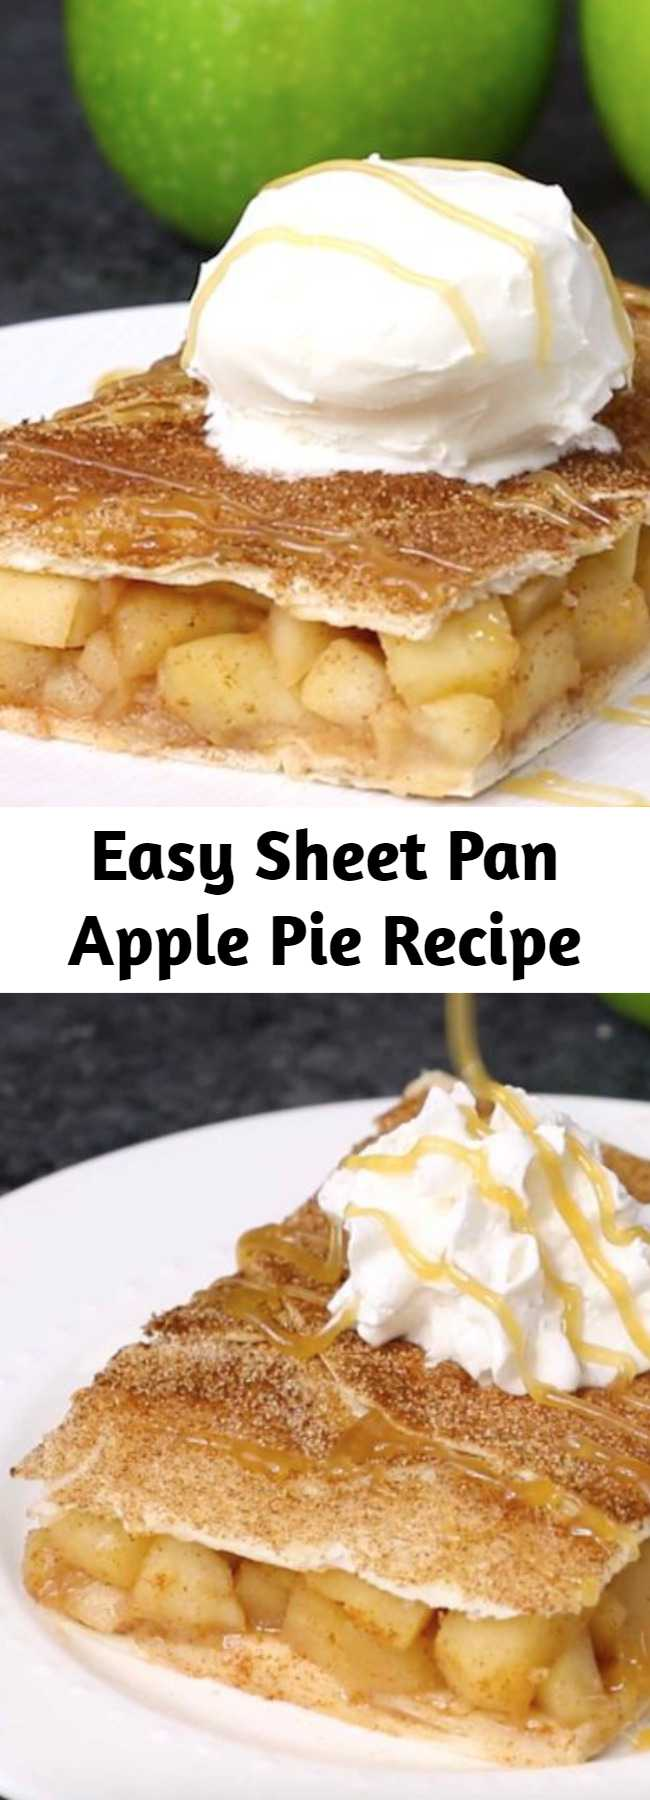 Easy Sheet Pan Apple Pie Recipe - Sheet Pan Apple Pie Bake is perfect when you need a dessert to feed a crowd at a party or the entire family. It's so much easier to make than traditional apple pie. It's a slab pie made with a tortilla crust and baked in a sheet pan. This easy recipe takes just over half-an-hour and uses 6 ingredients! Serve it with ice cream, whipped cream or caramel sauce for an amazing dessert!